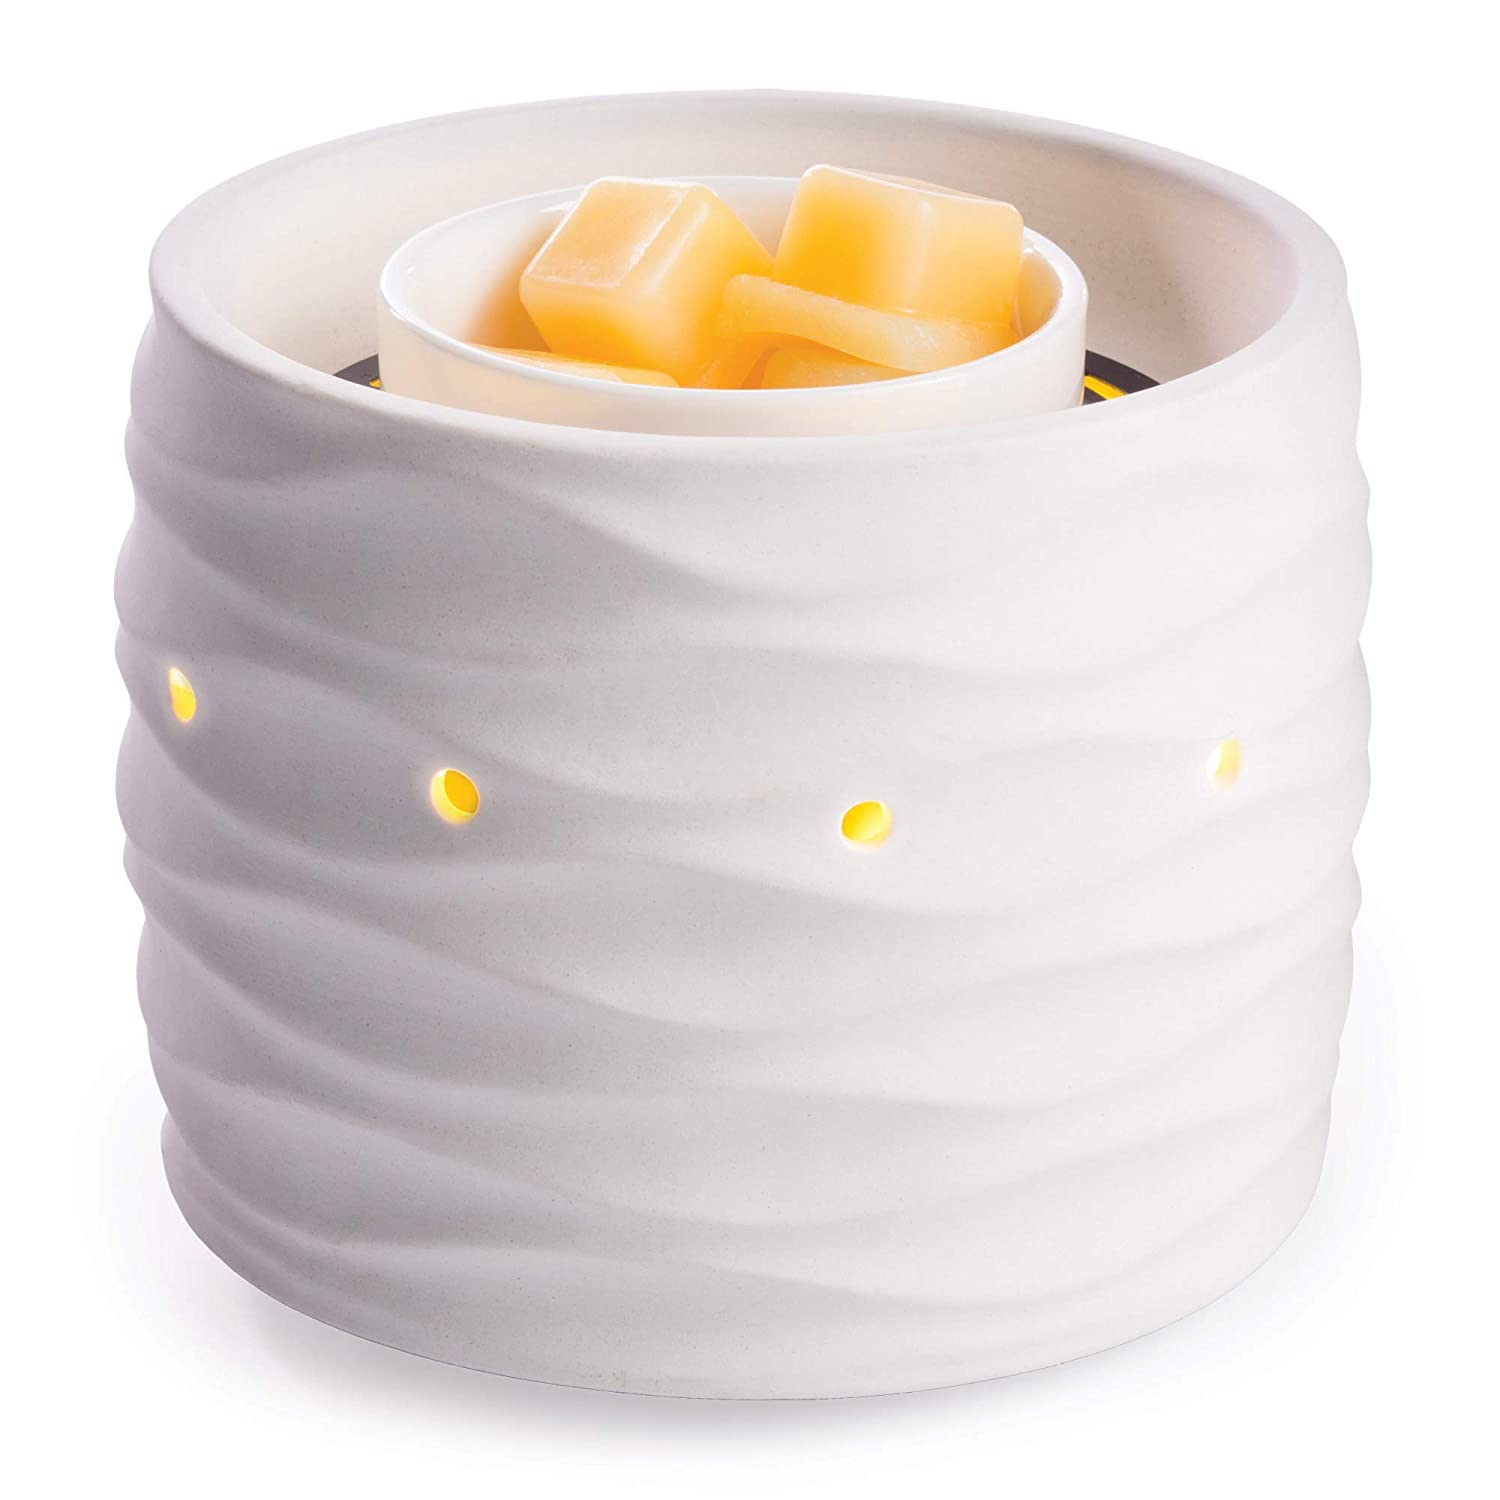 Candle Warmers Etc. Illuminaire Harmony Fan Fragrance Warmer- Whisper Quiet Fan Circulates Scent From Scented Candle Wax Melts And Tarts For Full Room Freshener, White